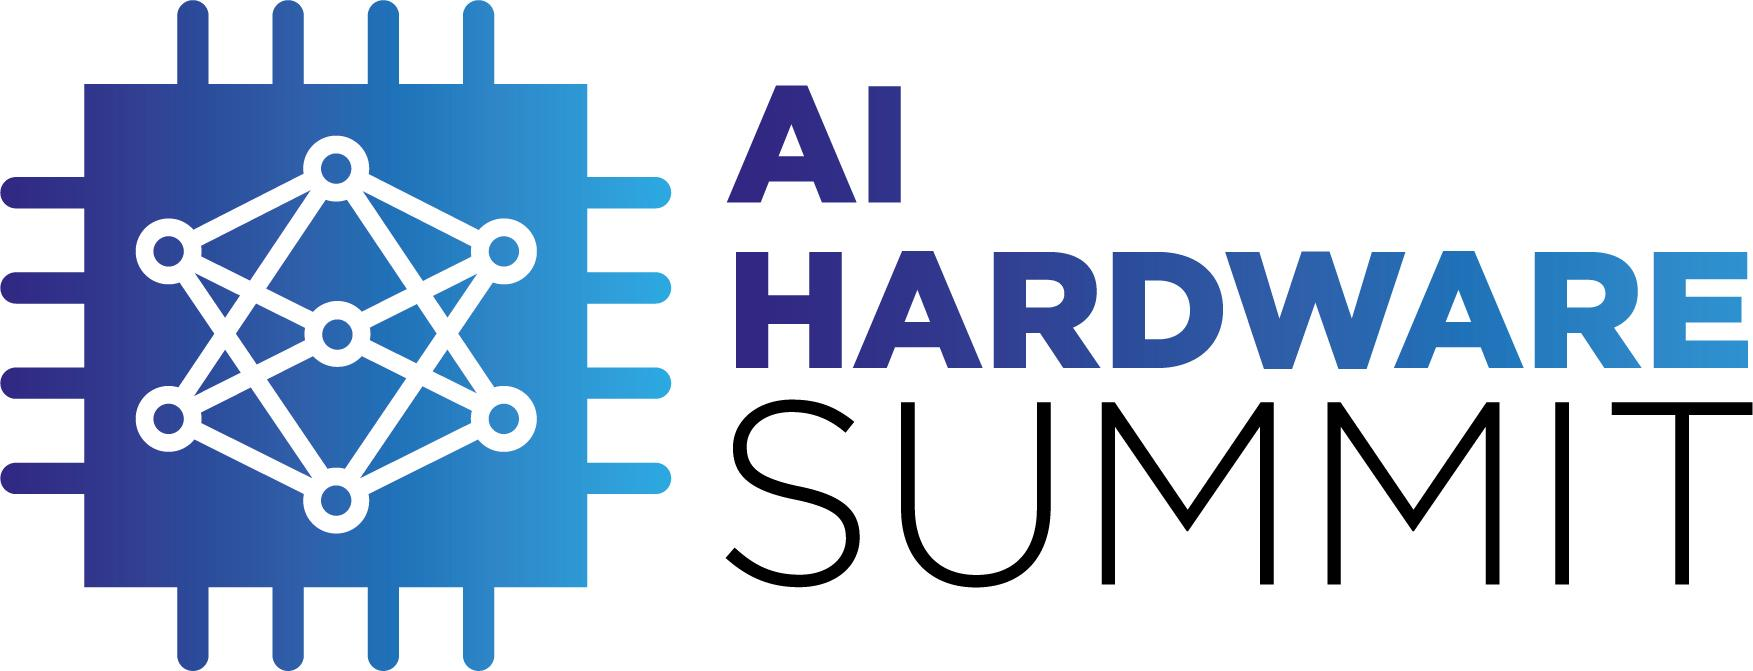 AI Hardware Summit 2018